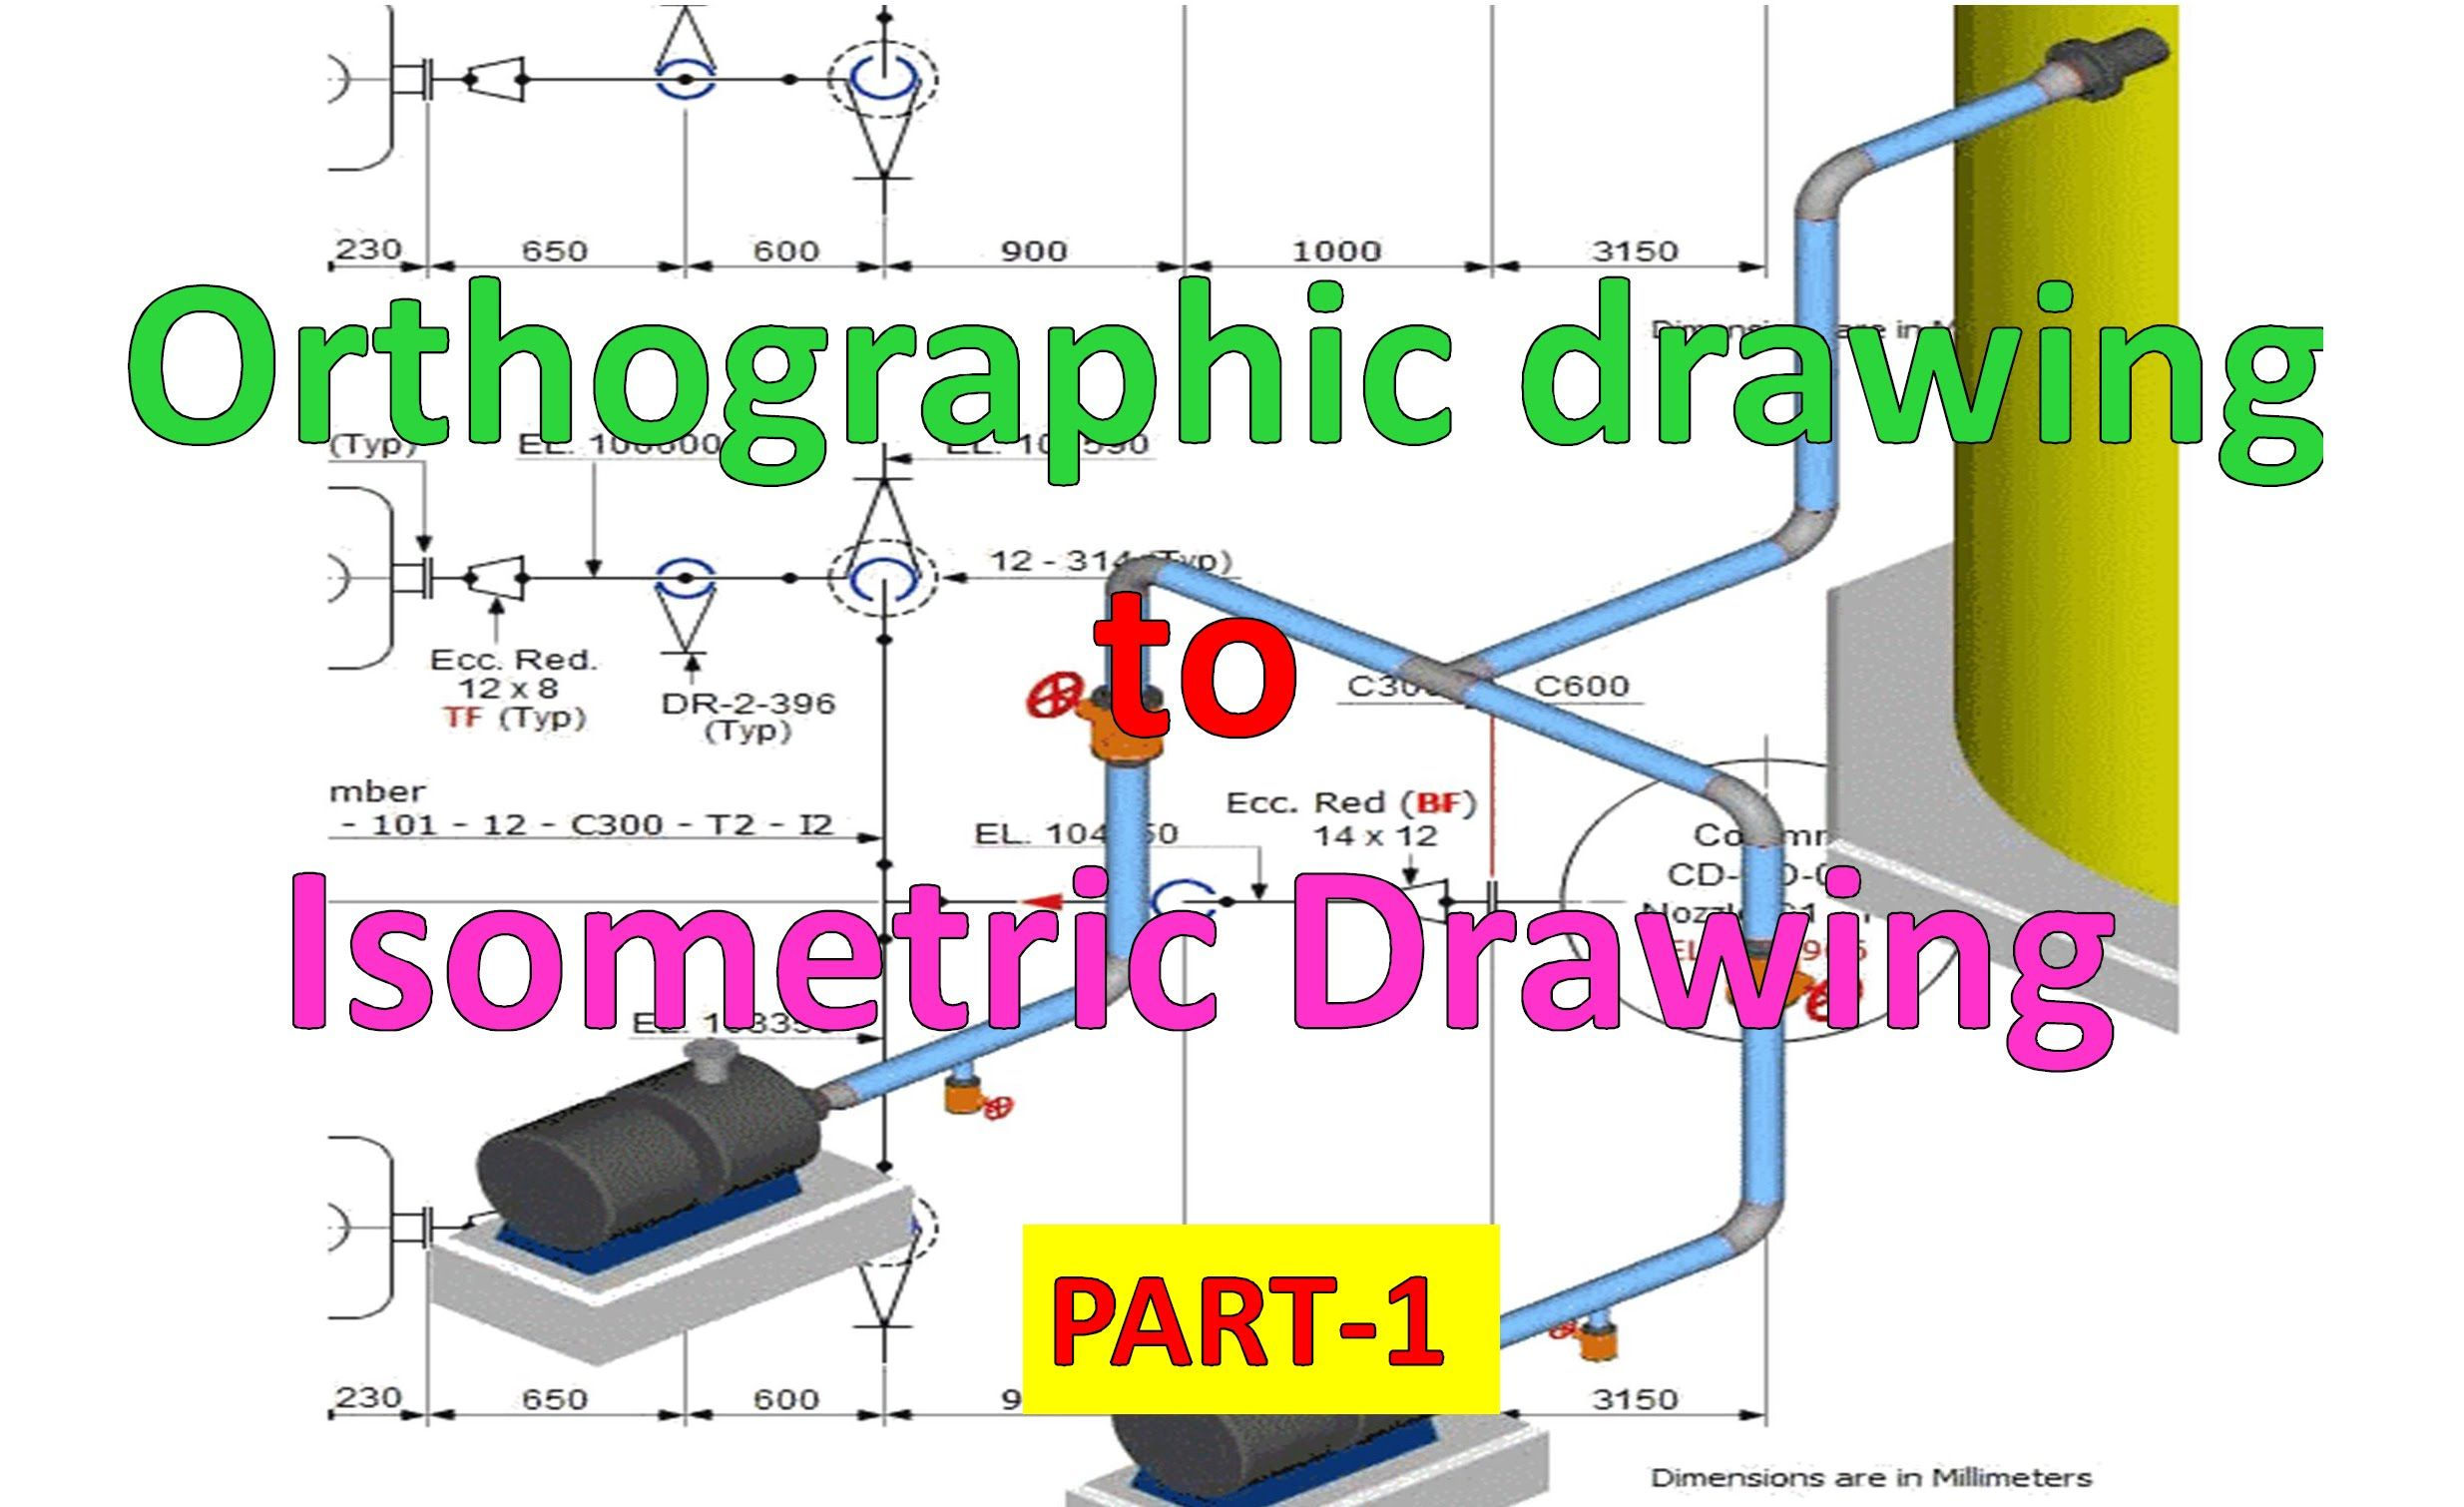 hight resolution of piping draw isometric drawing from orthographic drawing part 1